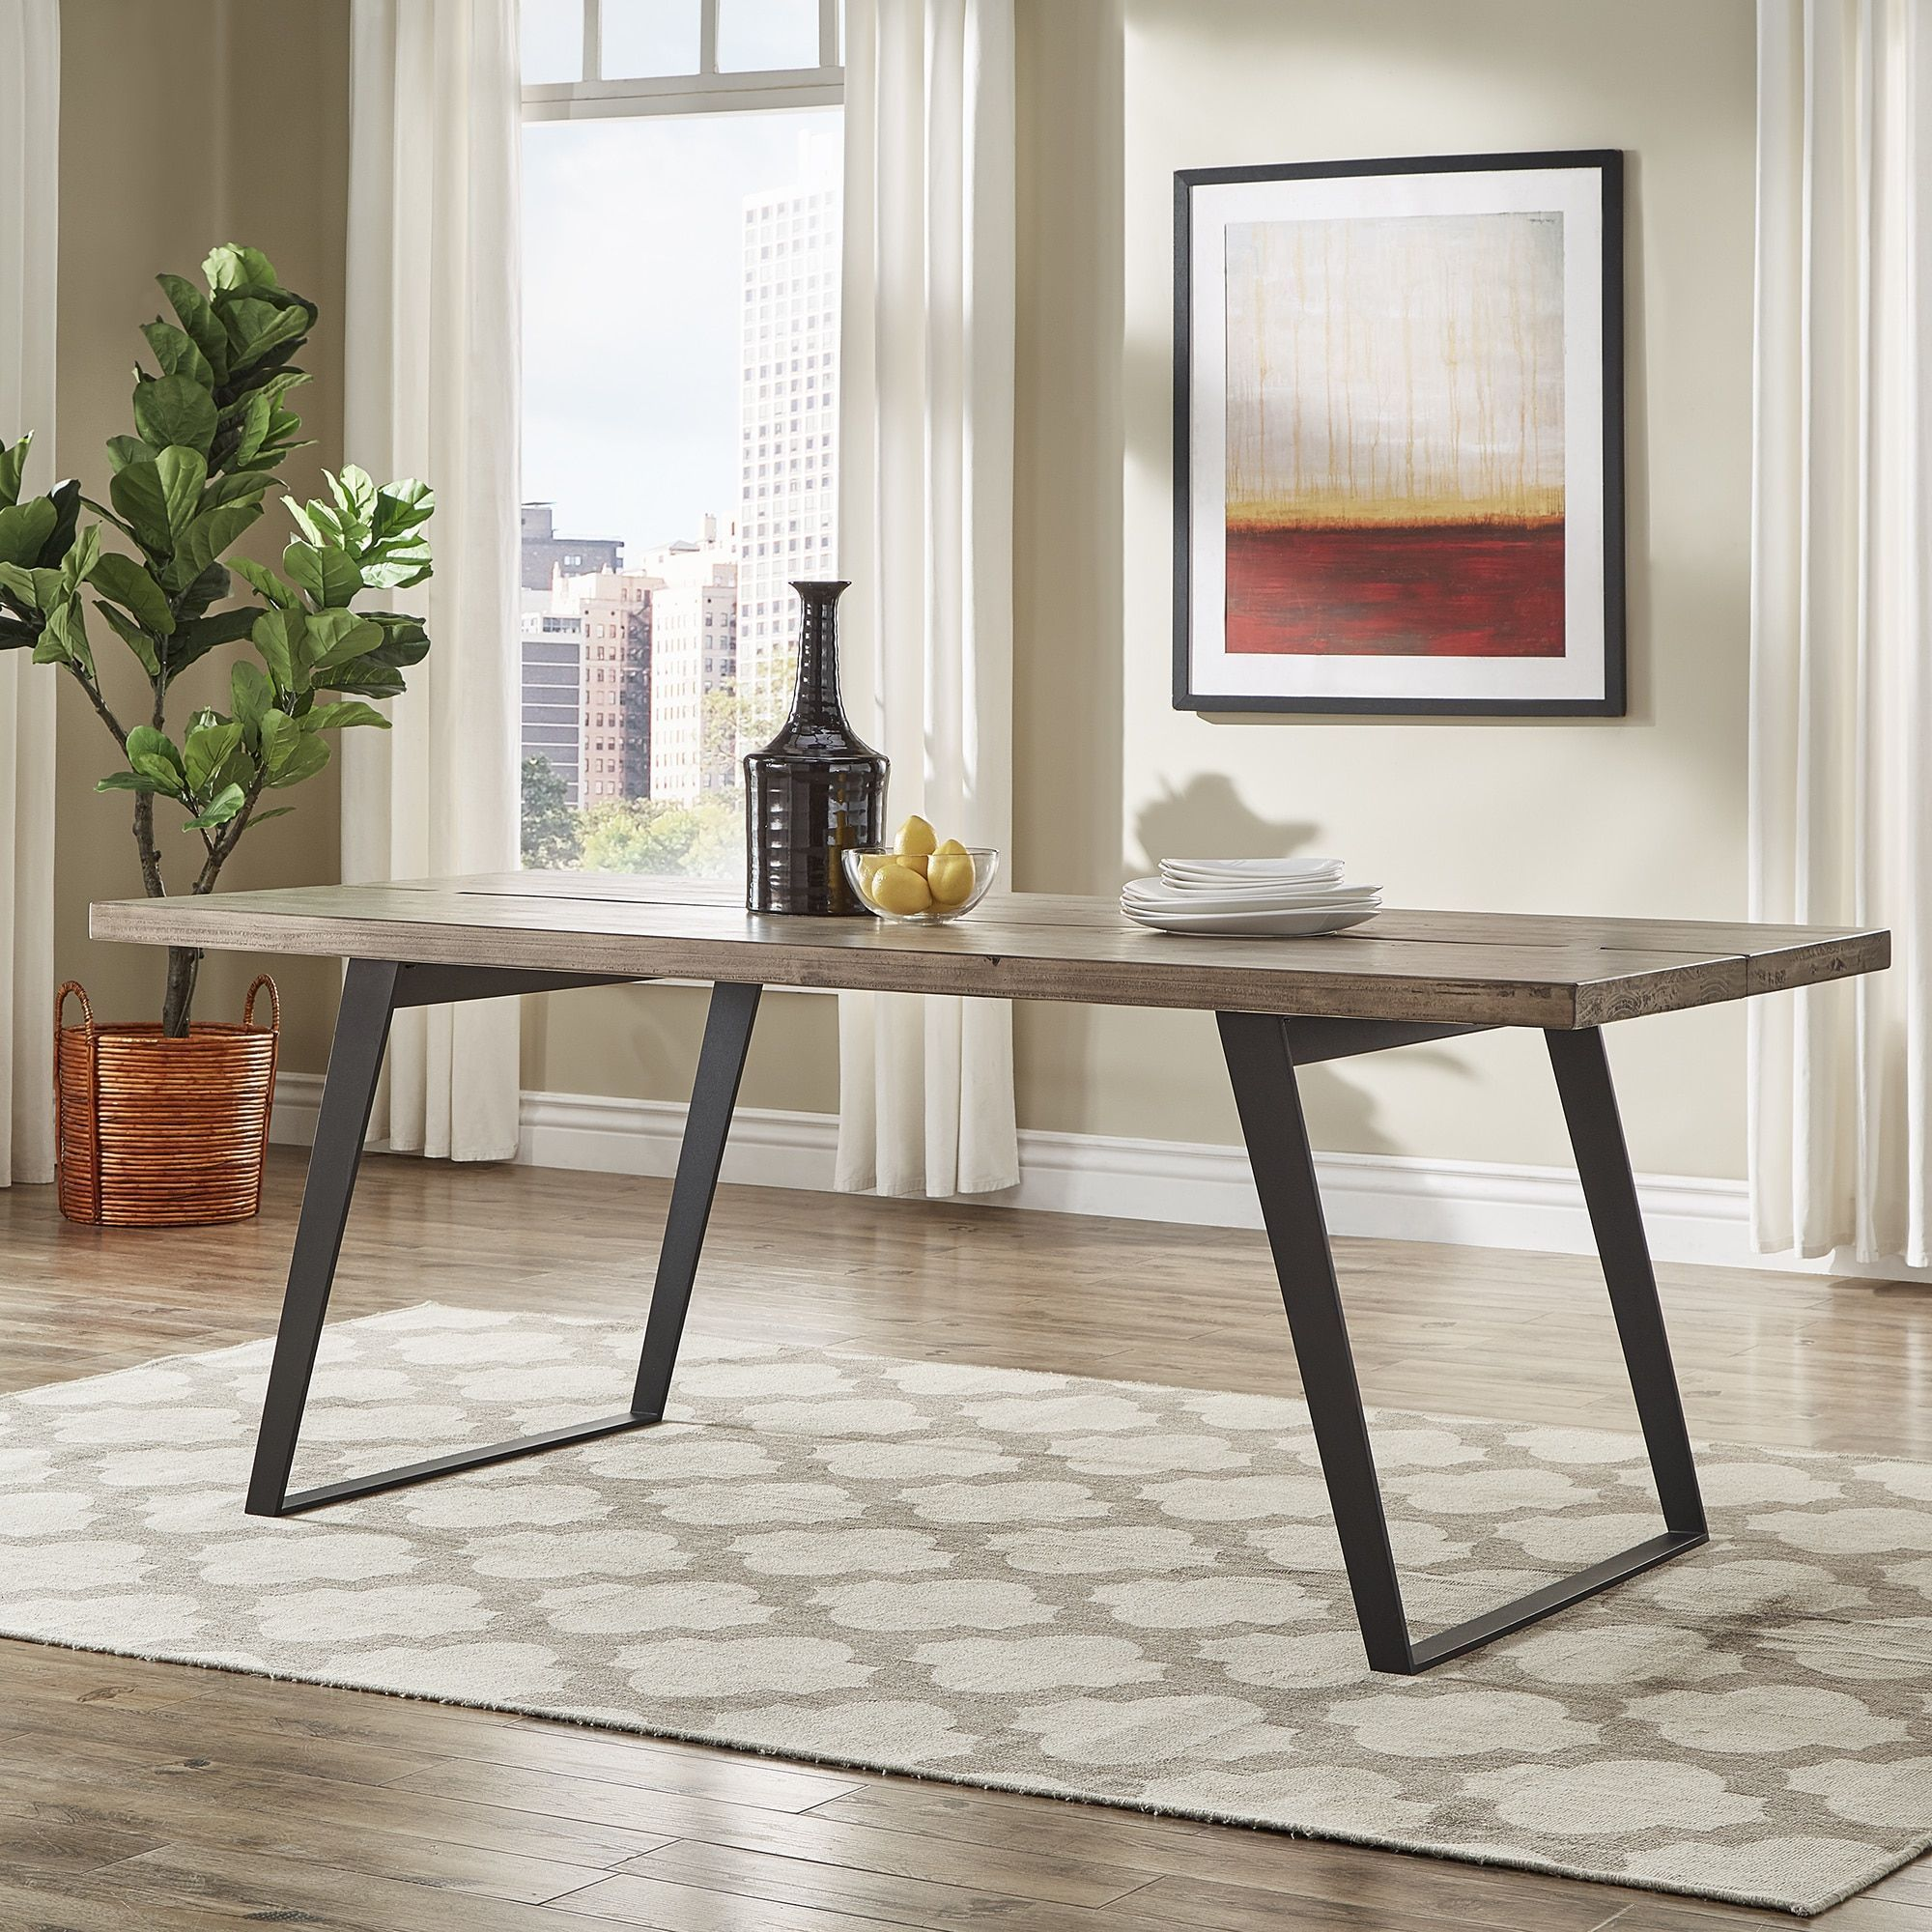 Division Split Top Mixed Media Industrial Wood Dining Table iNSPIRE Q Modern  by iNSPIRE Q